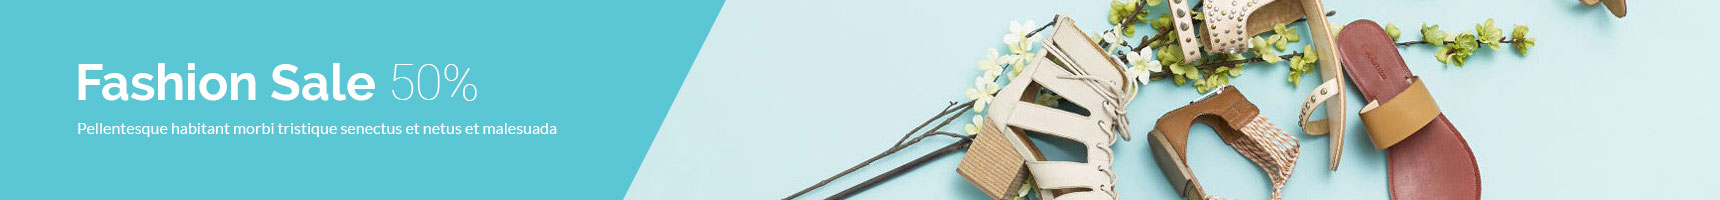 banner-home-11-4